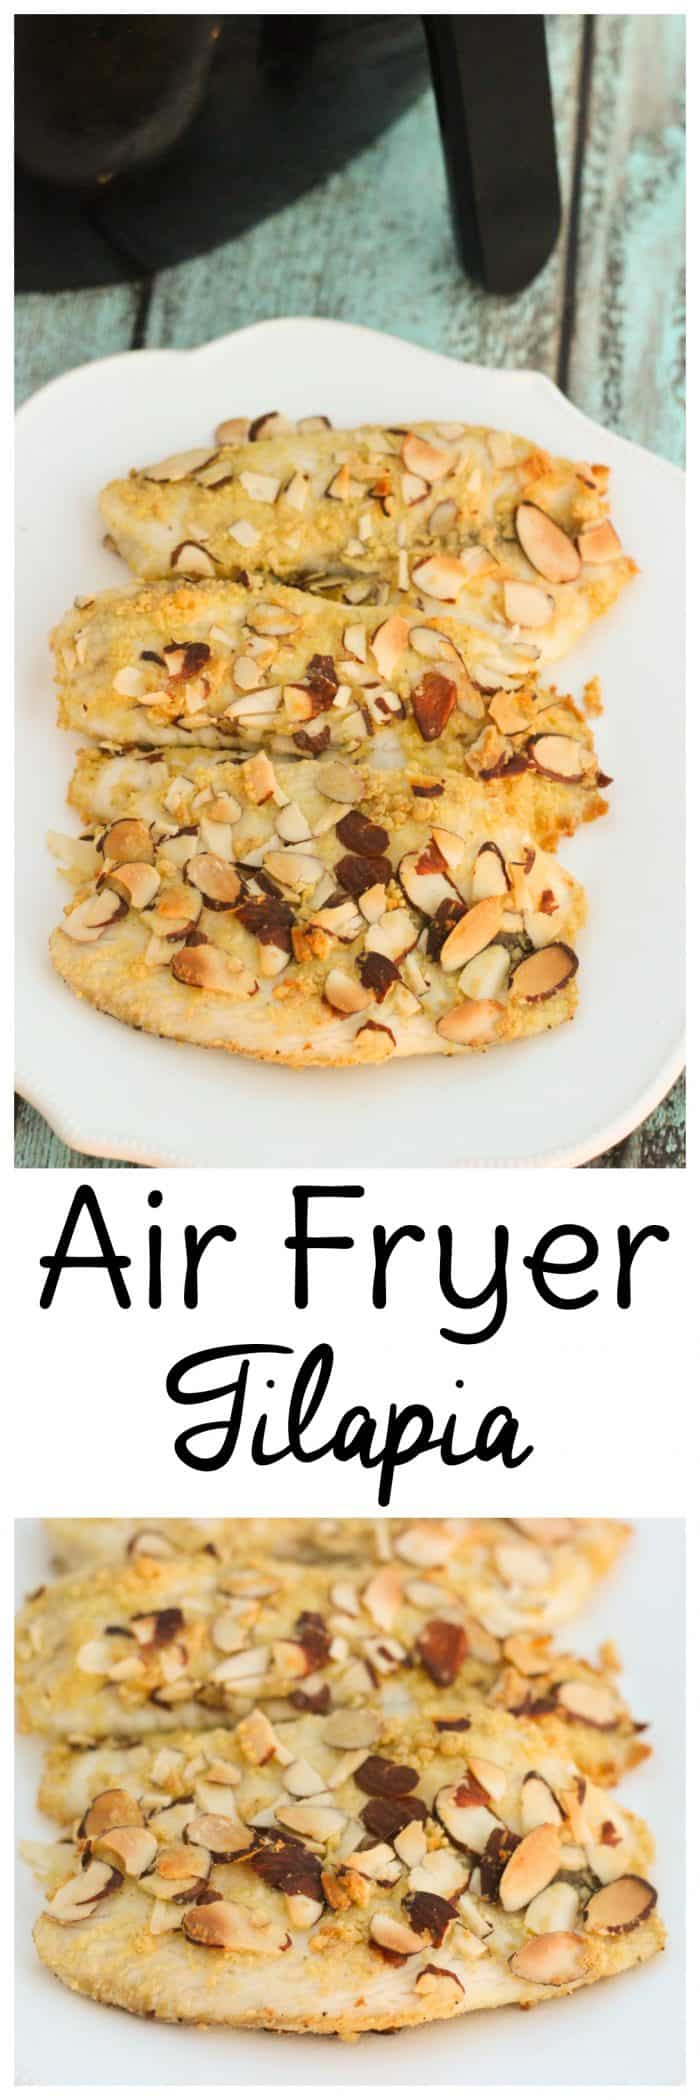 Air fryer fish tends to come out with a perfect, flaky texture in a short amount of time. Try this air fryer tilapia recipe the next time you need to get a flavorful, nutritious dinner on the table quickly that's gluten-free and easily adaptable for paleo diets.